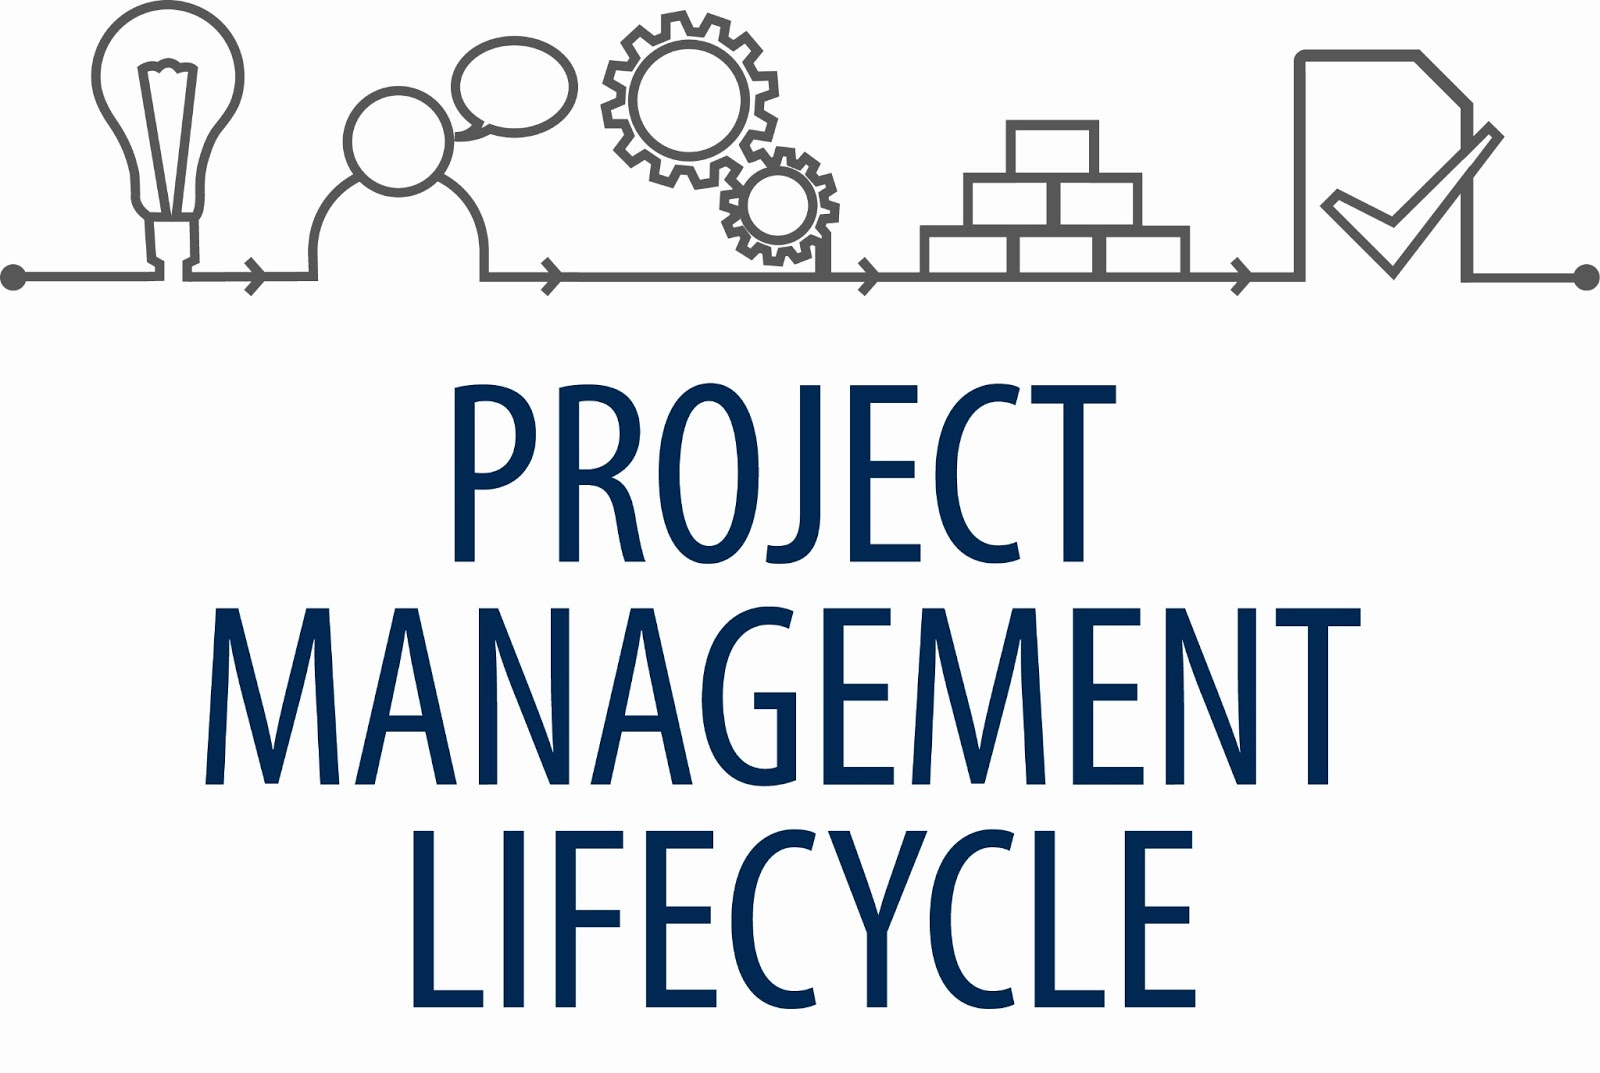 Project Management: CIS1513WINTER.TUES.13.06